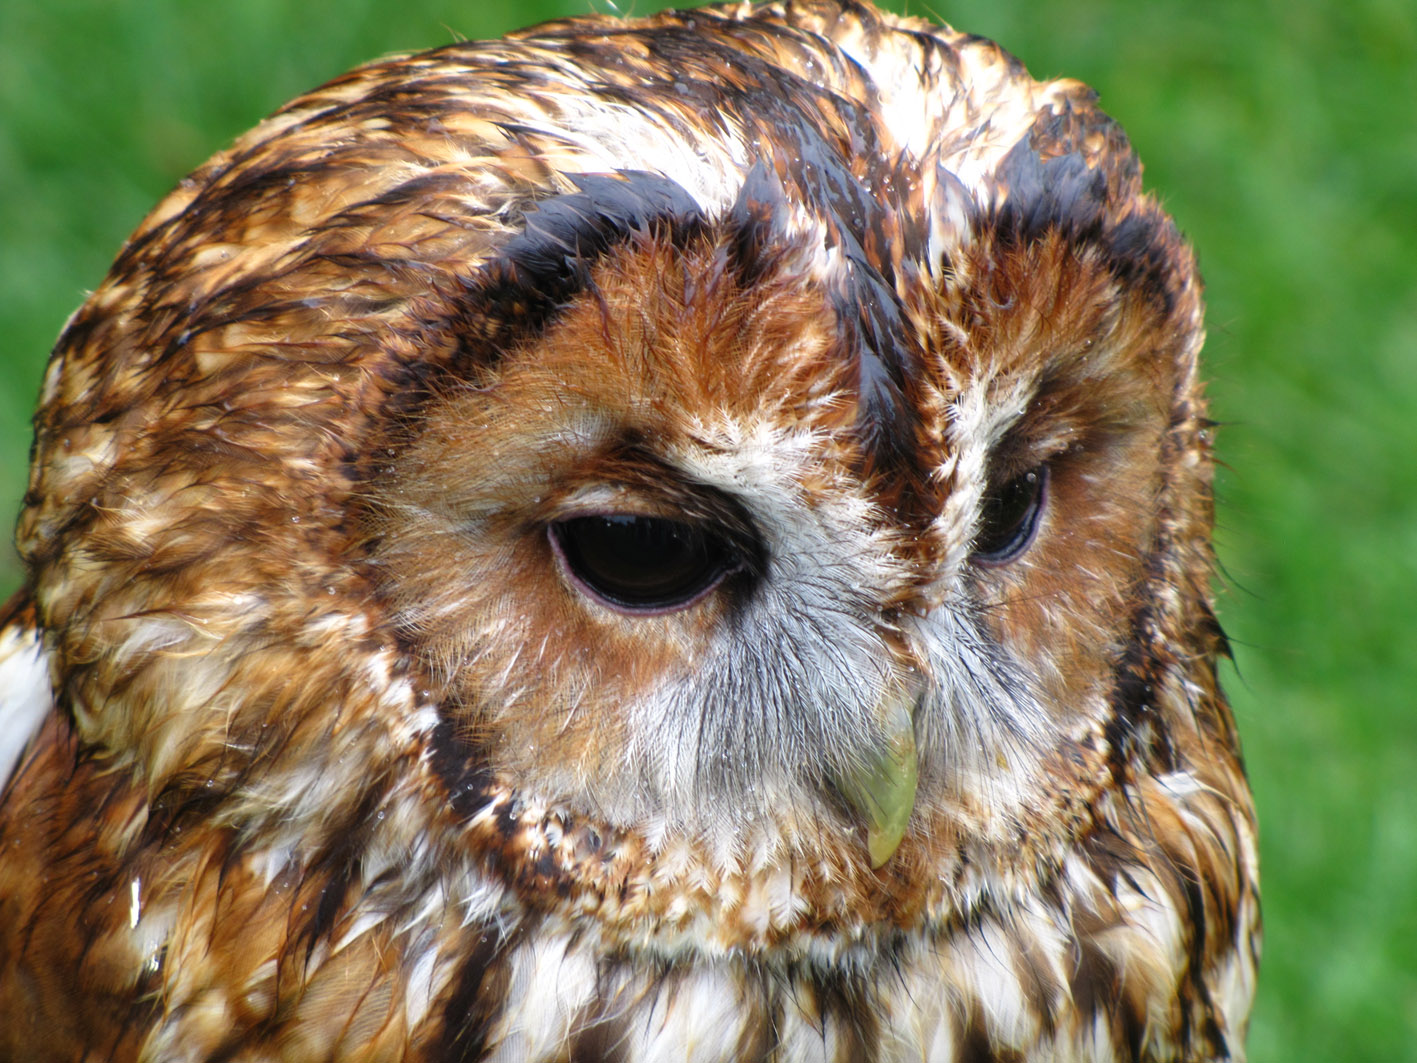 See birds of prey at the wild fair